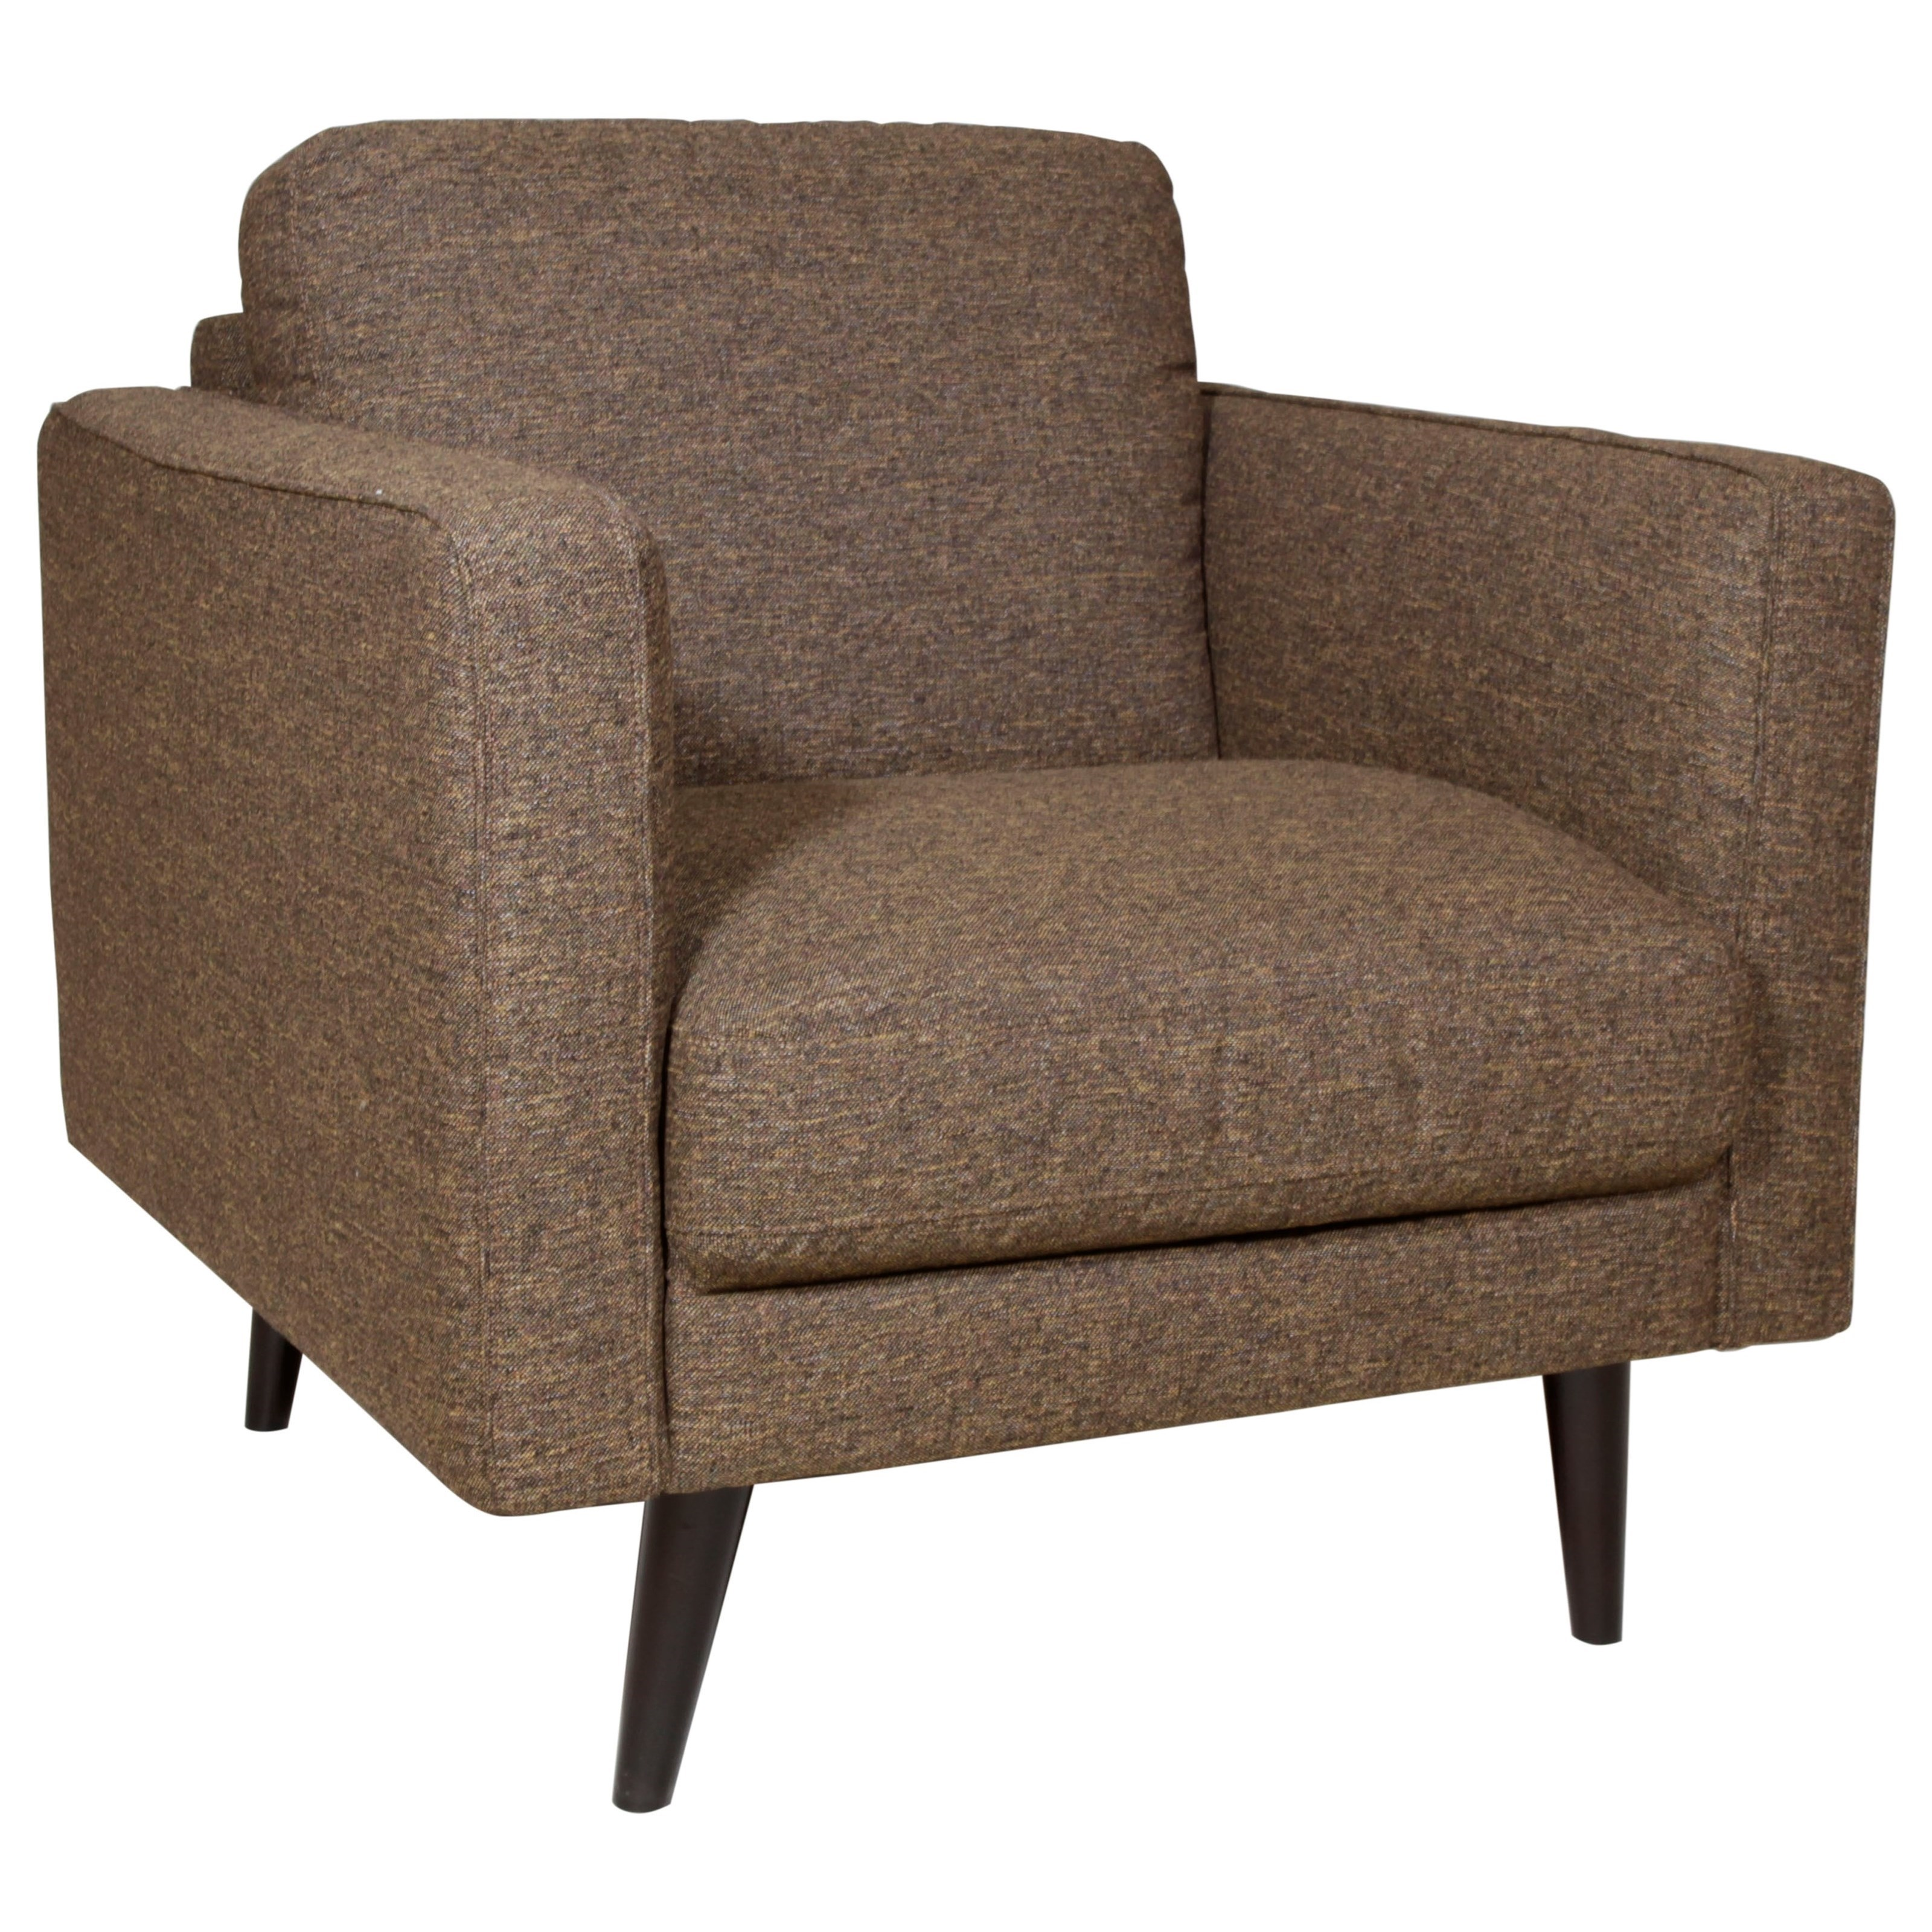 Destrezza Chair by Natuzzi Editions at Sadler's Home Furnishings